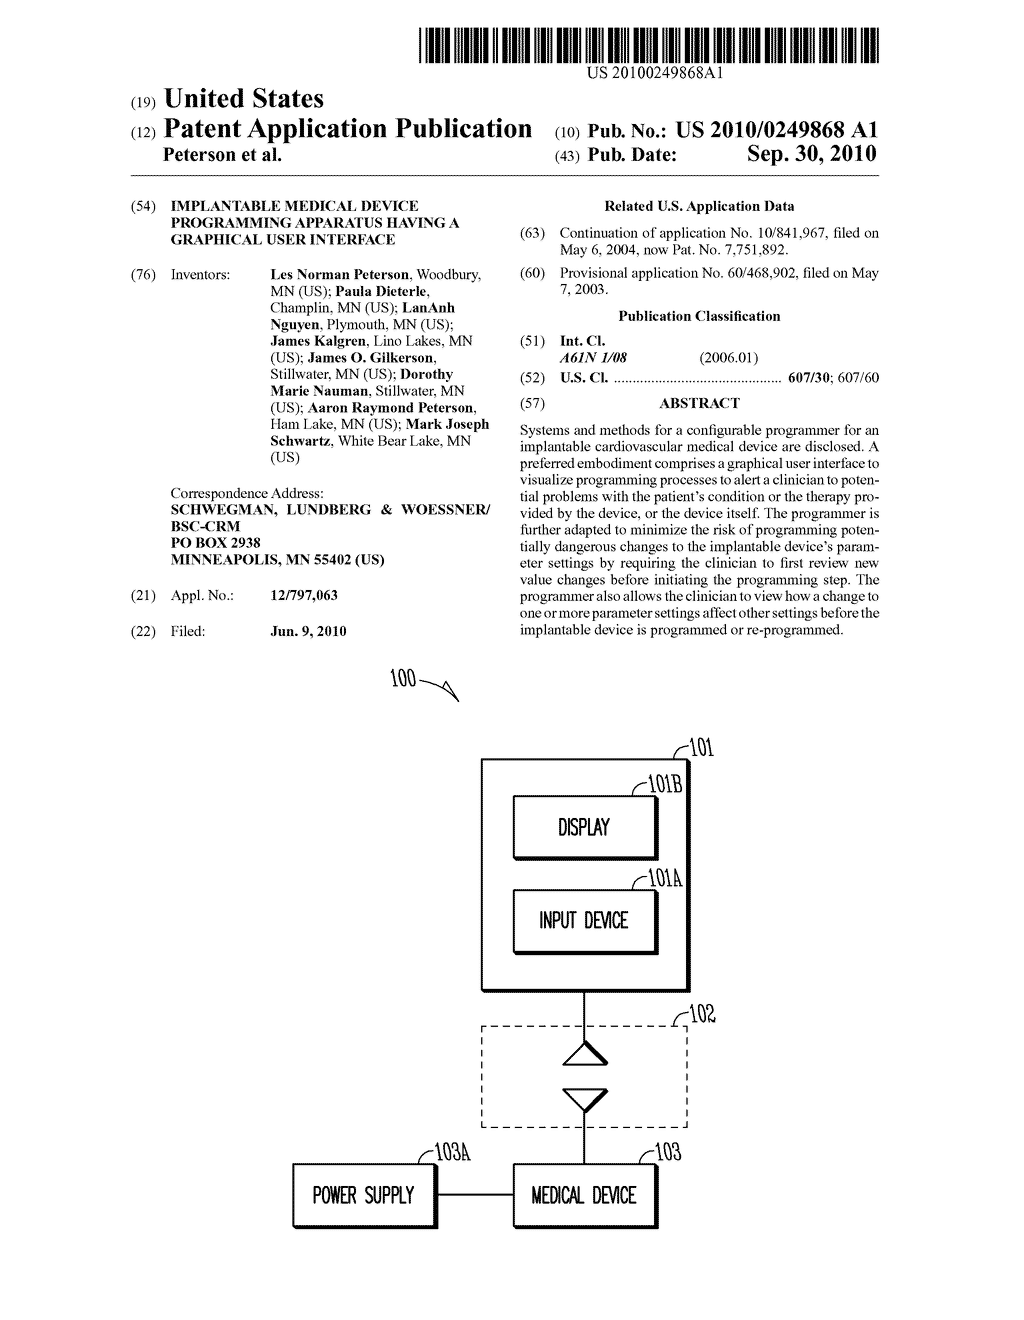 IMPLANTABLE MEDICAL DEVICE PROGRAMMING APPARATUS HAVING A GRAPHICAL USER INTERFACE - diagram, schematic, and image 01